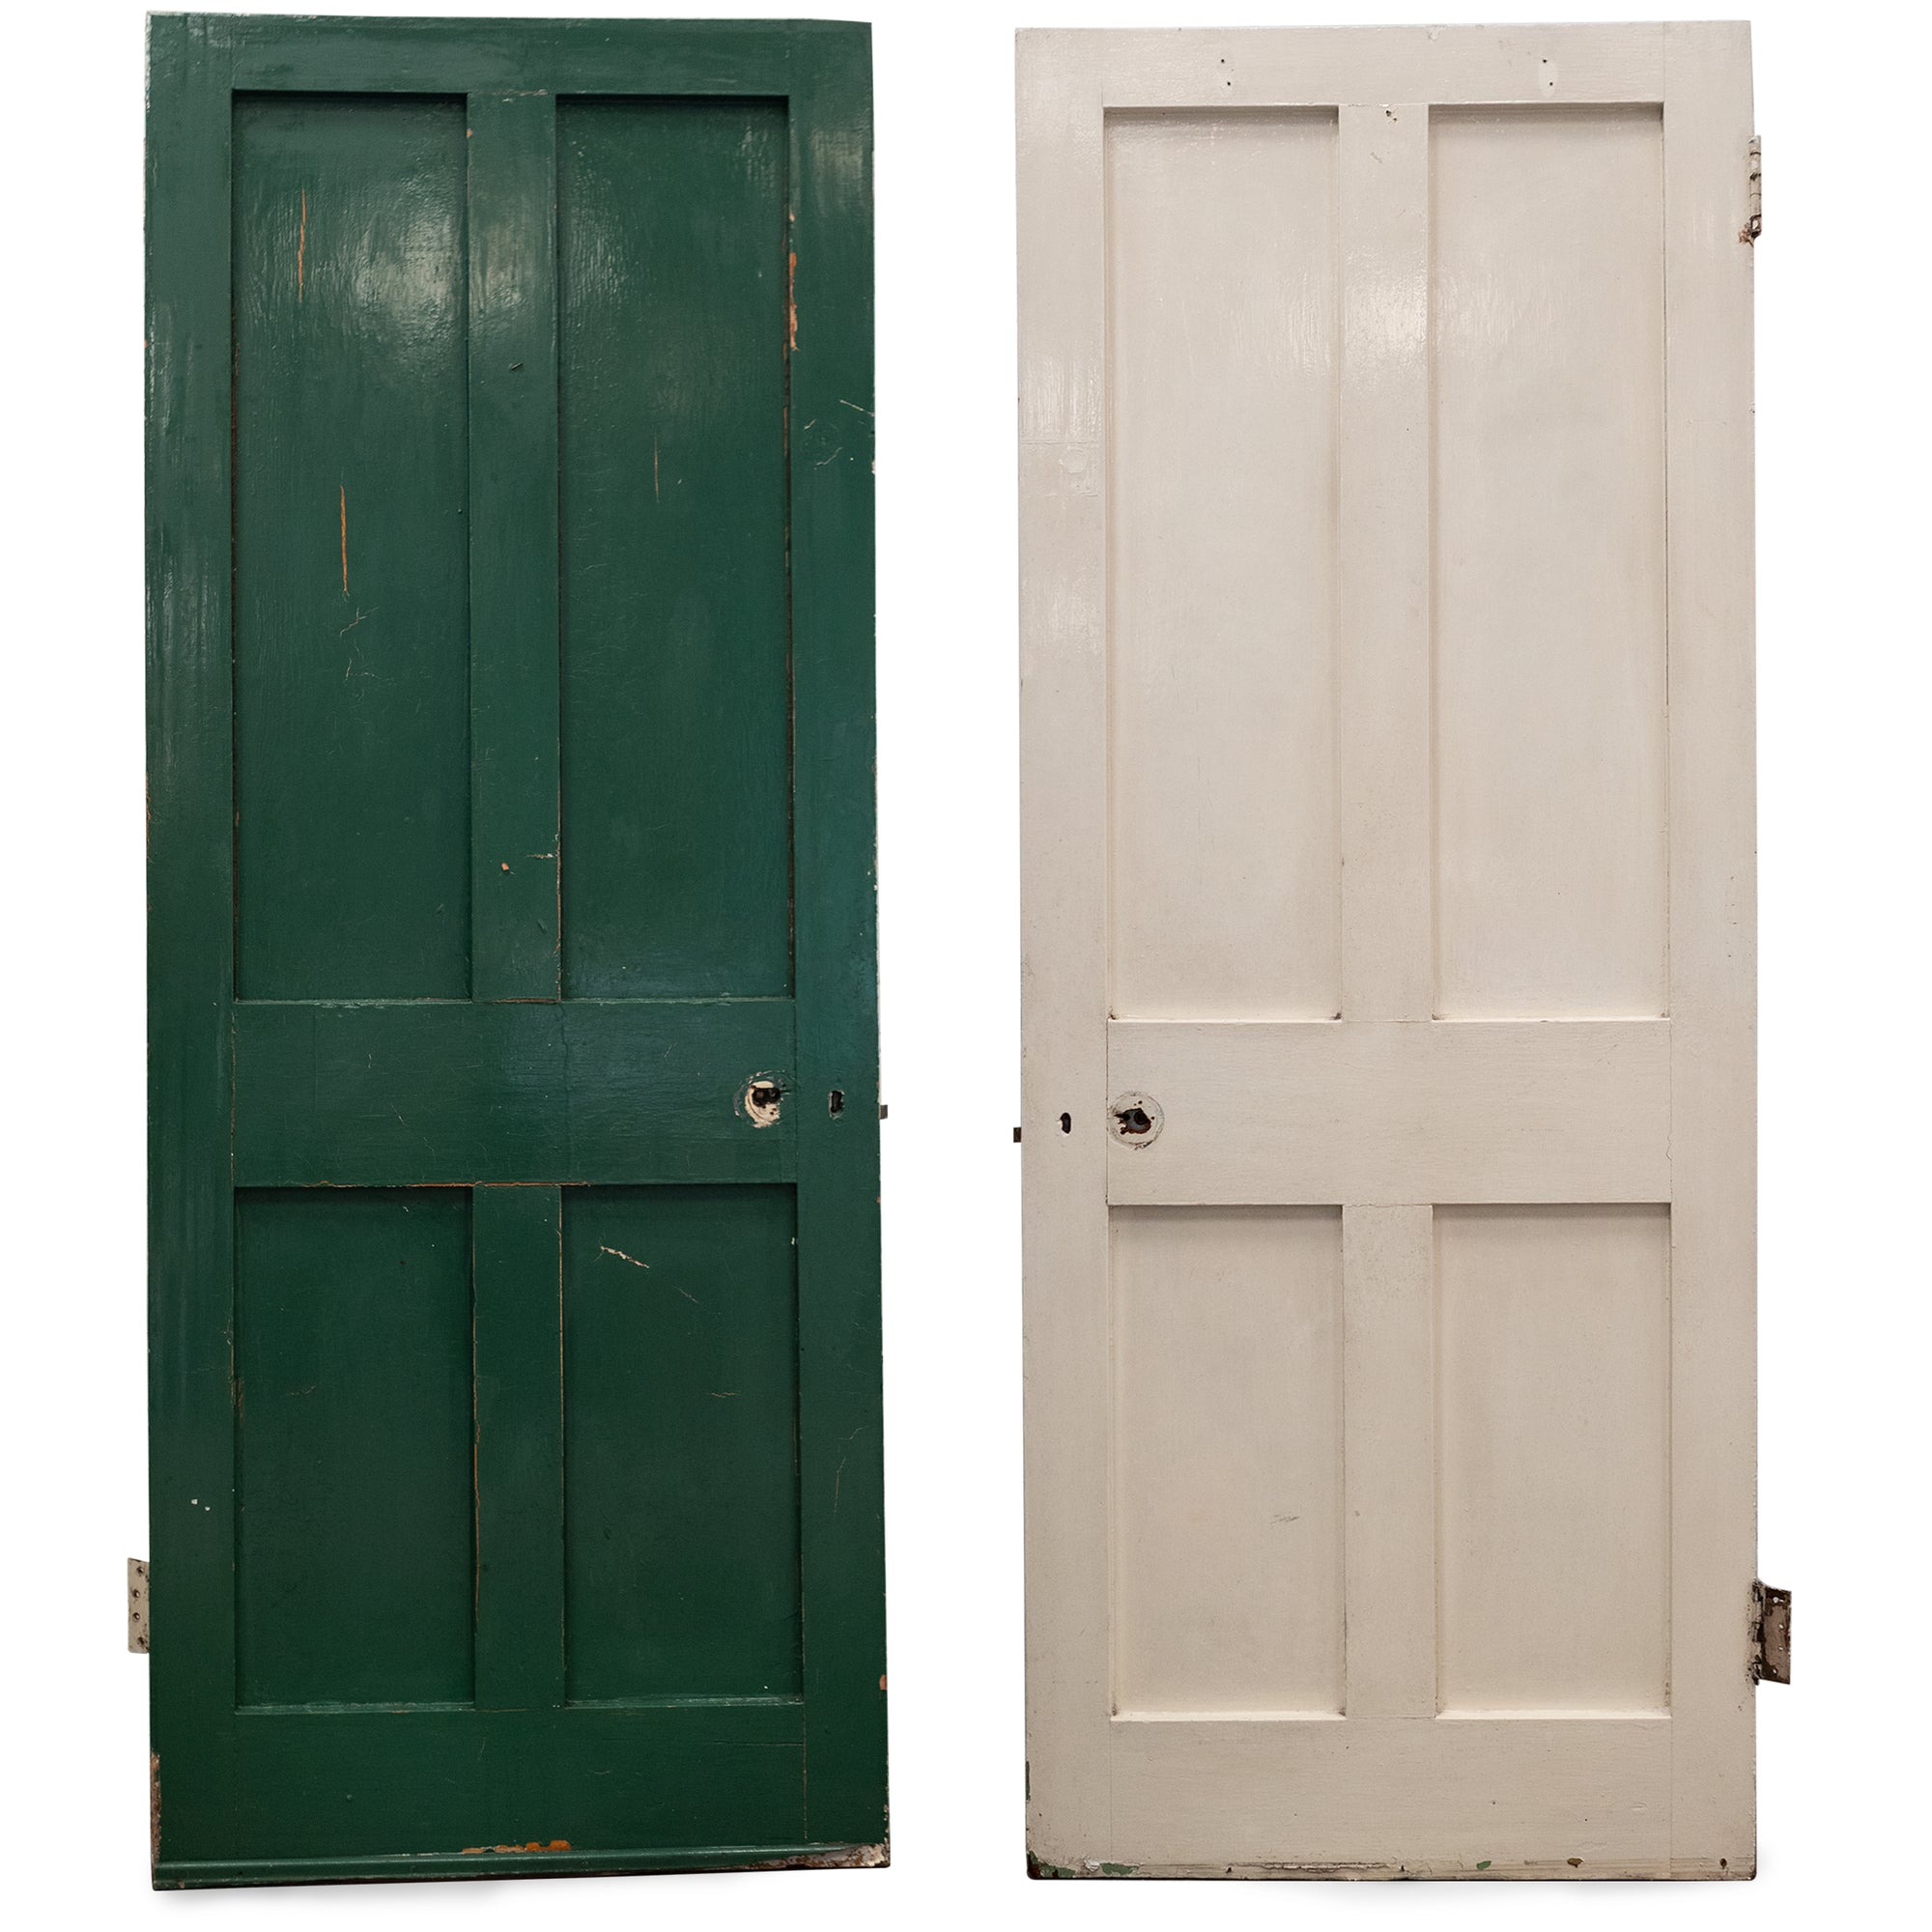 Antique Victorian 4 Panel Door - 197cm x 78cm